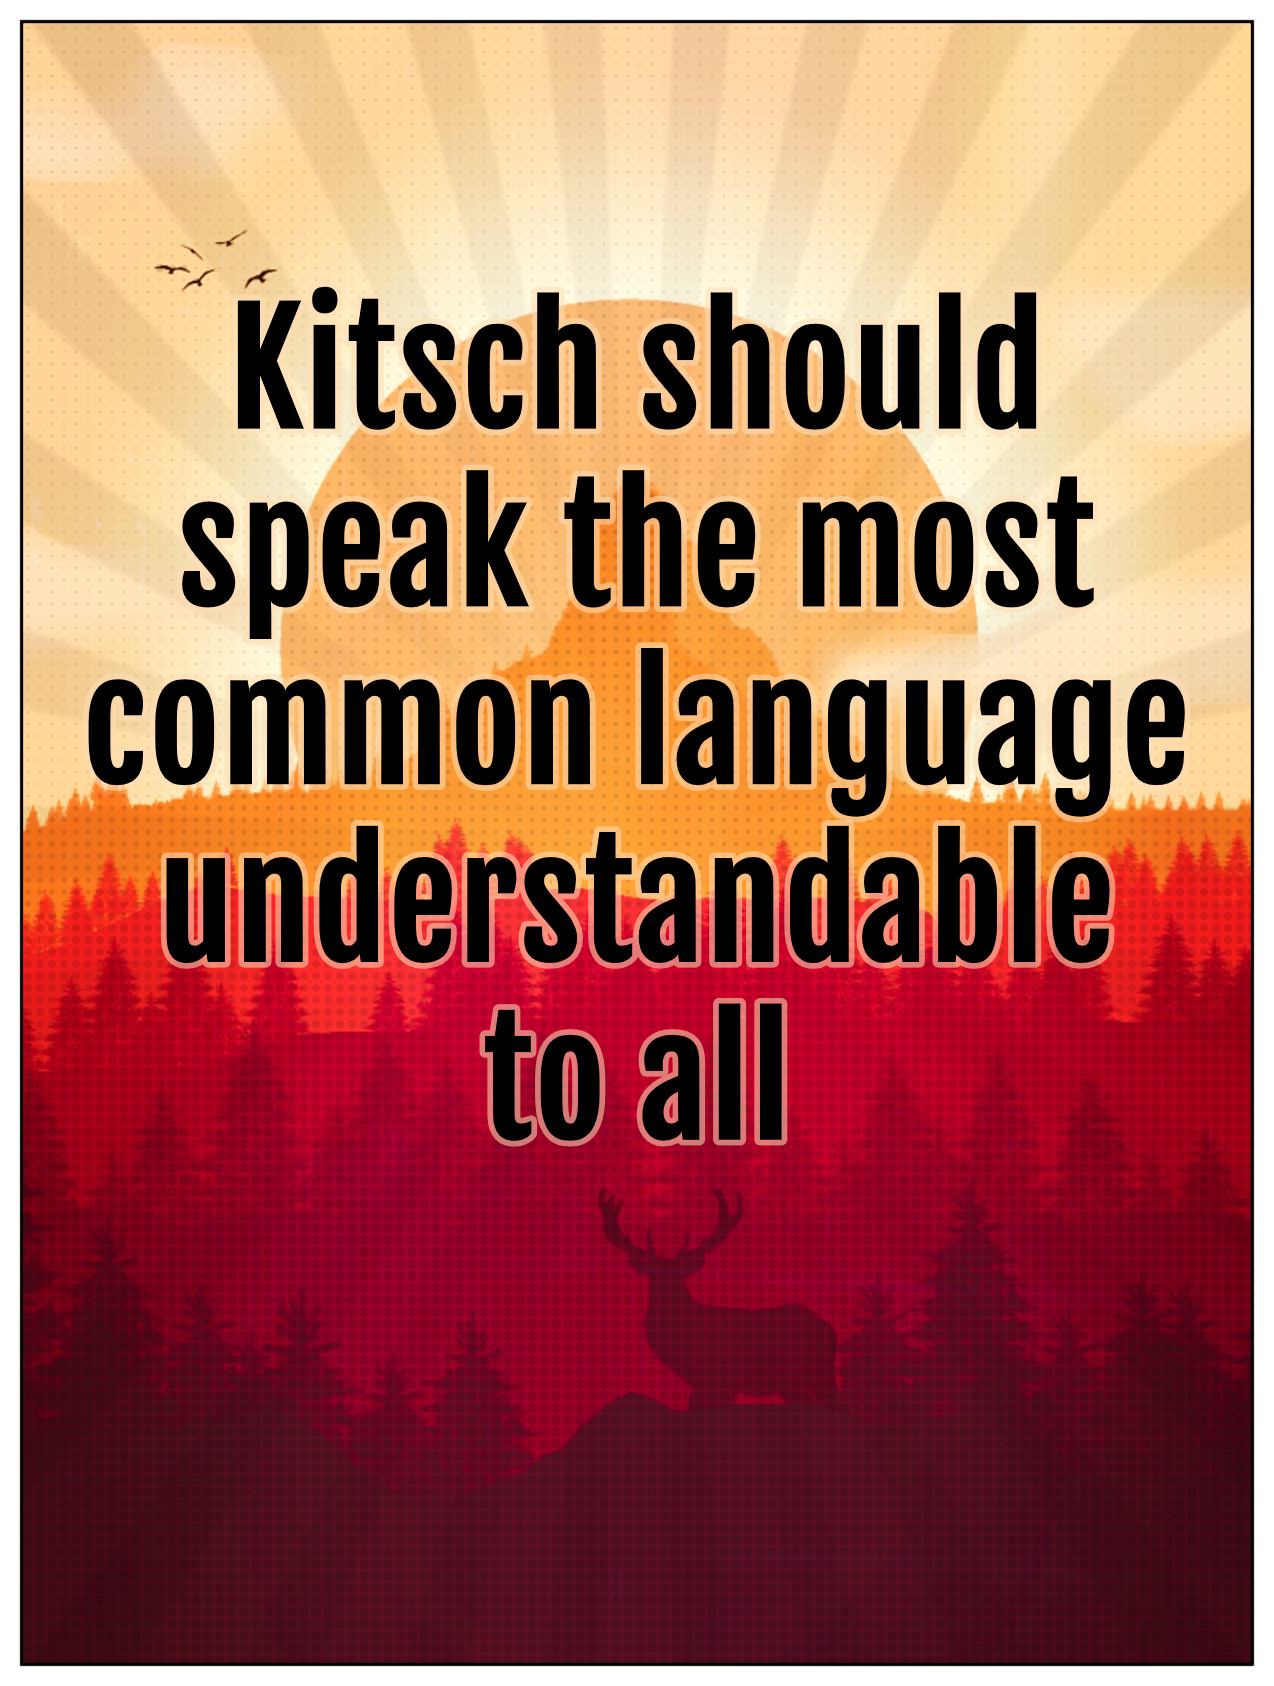 bekitschig blog Kitsch should sspeak the most common language understandable to all Tomas Kulka